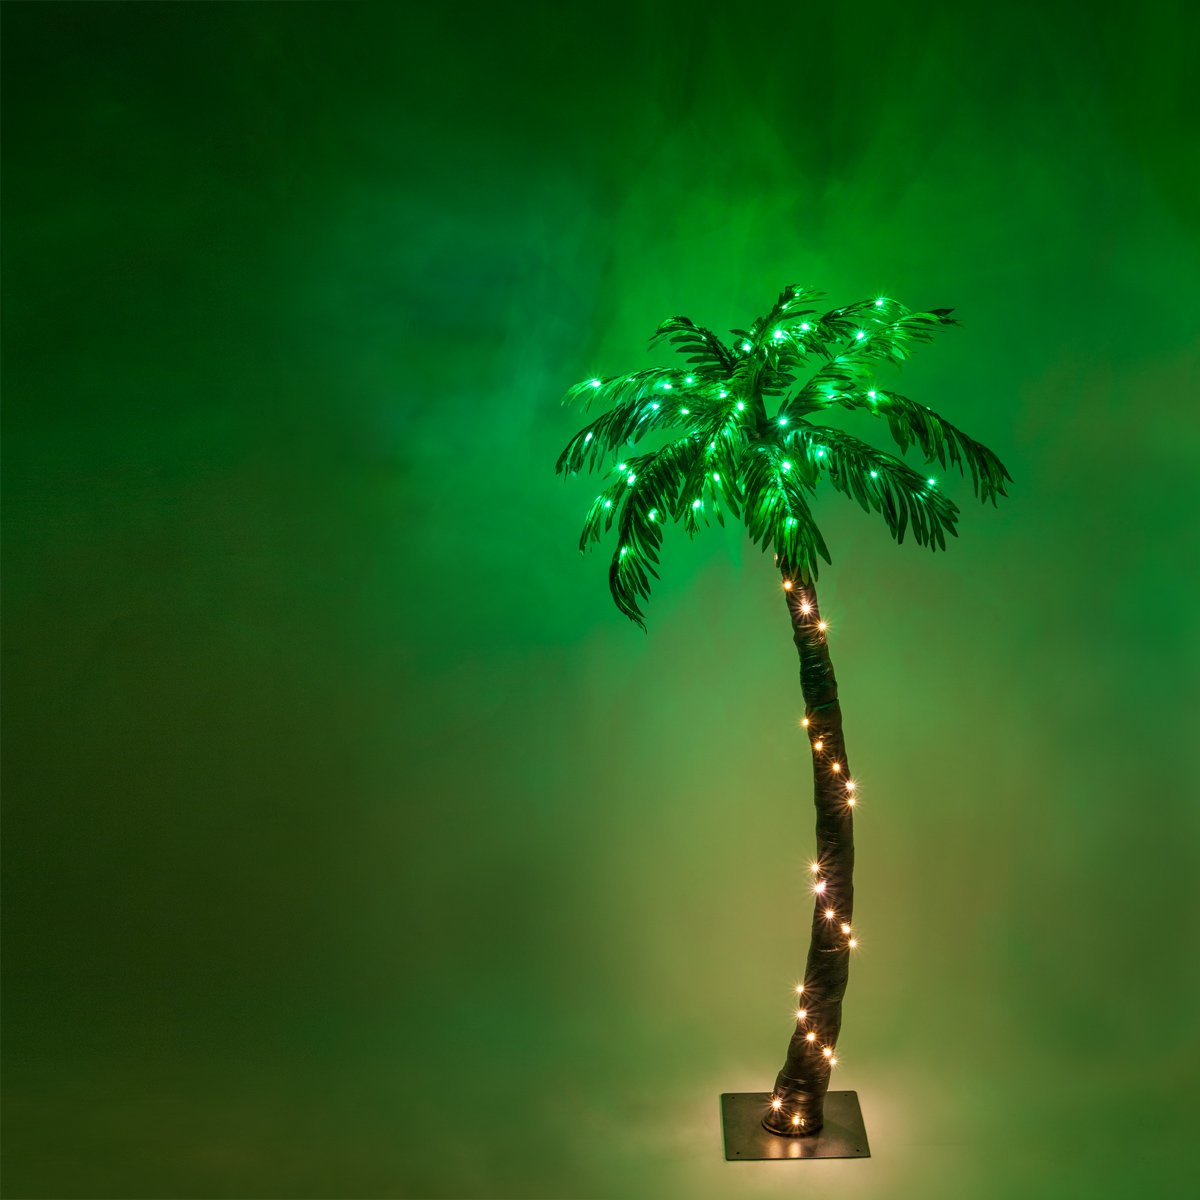 Kringle Traditions 10 Function LED Lighted Palm Tree - Pre-Lit Palm Tree Indoor/Outdoor - Remoted Controlled with Timer (5 Ft)